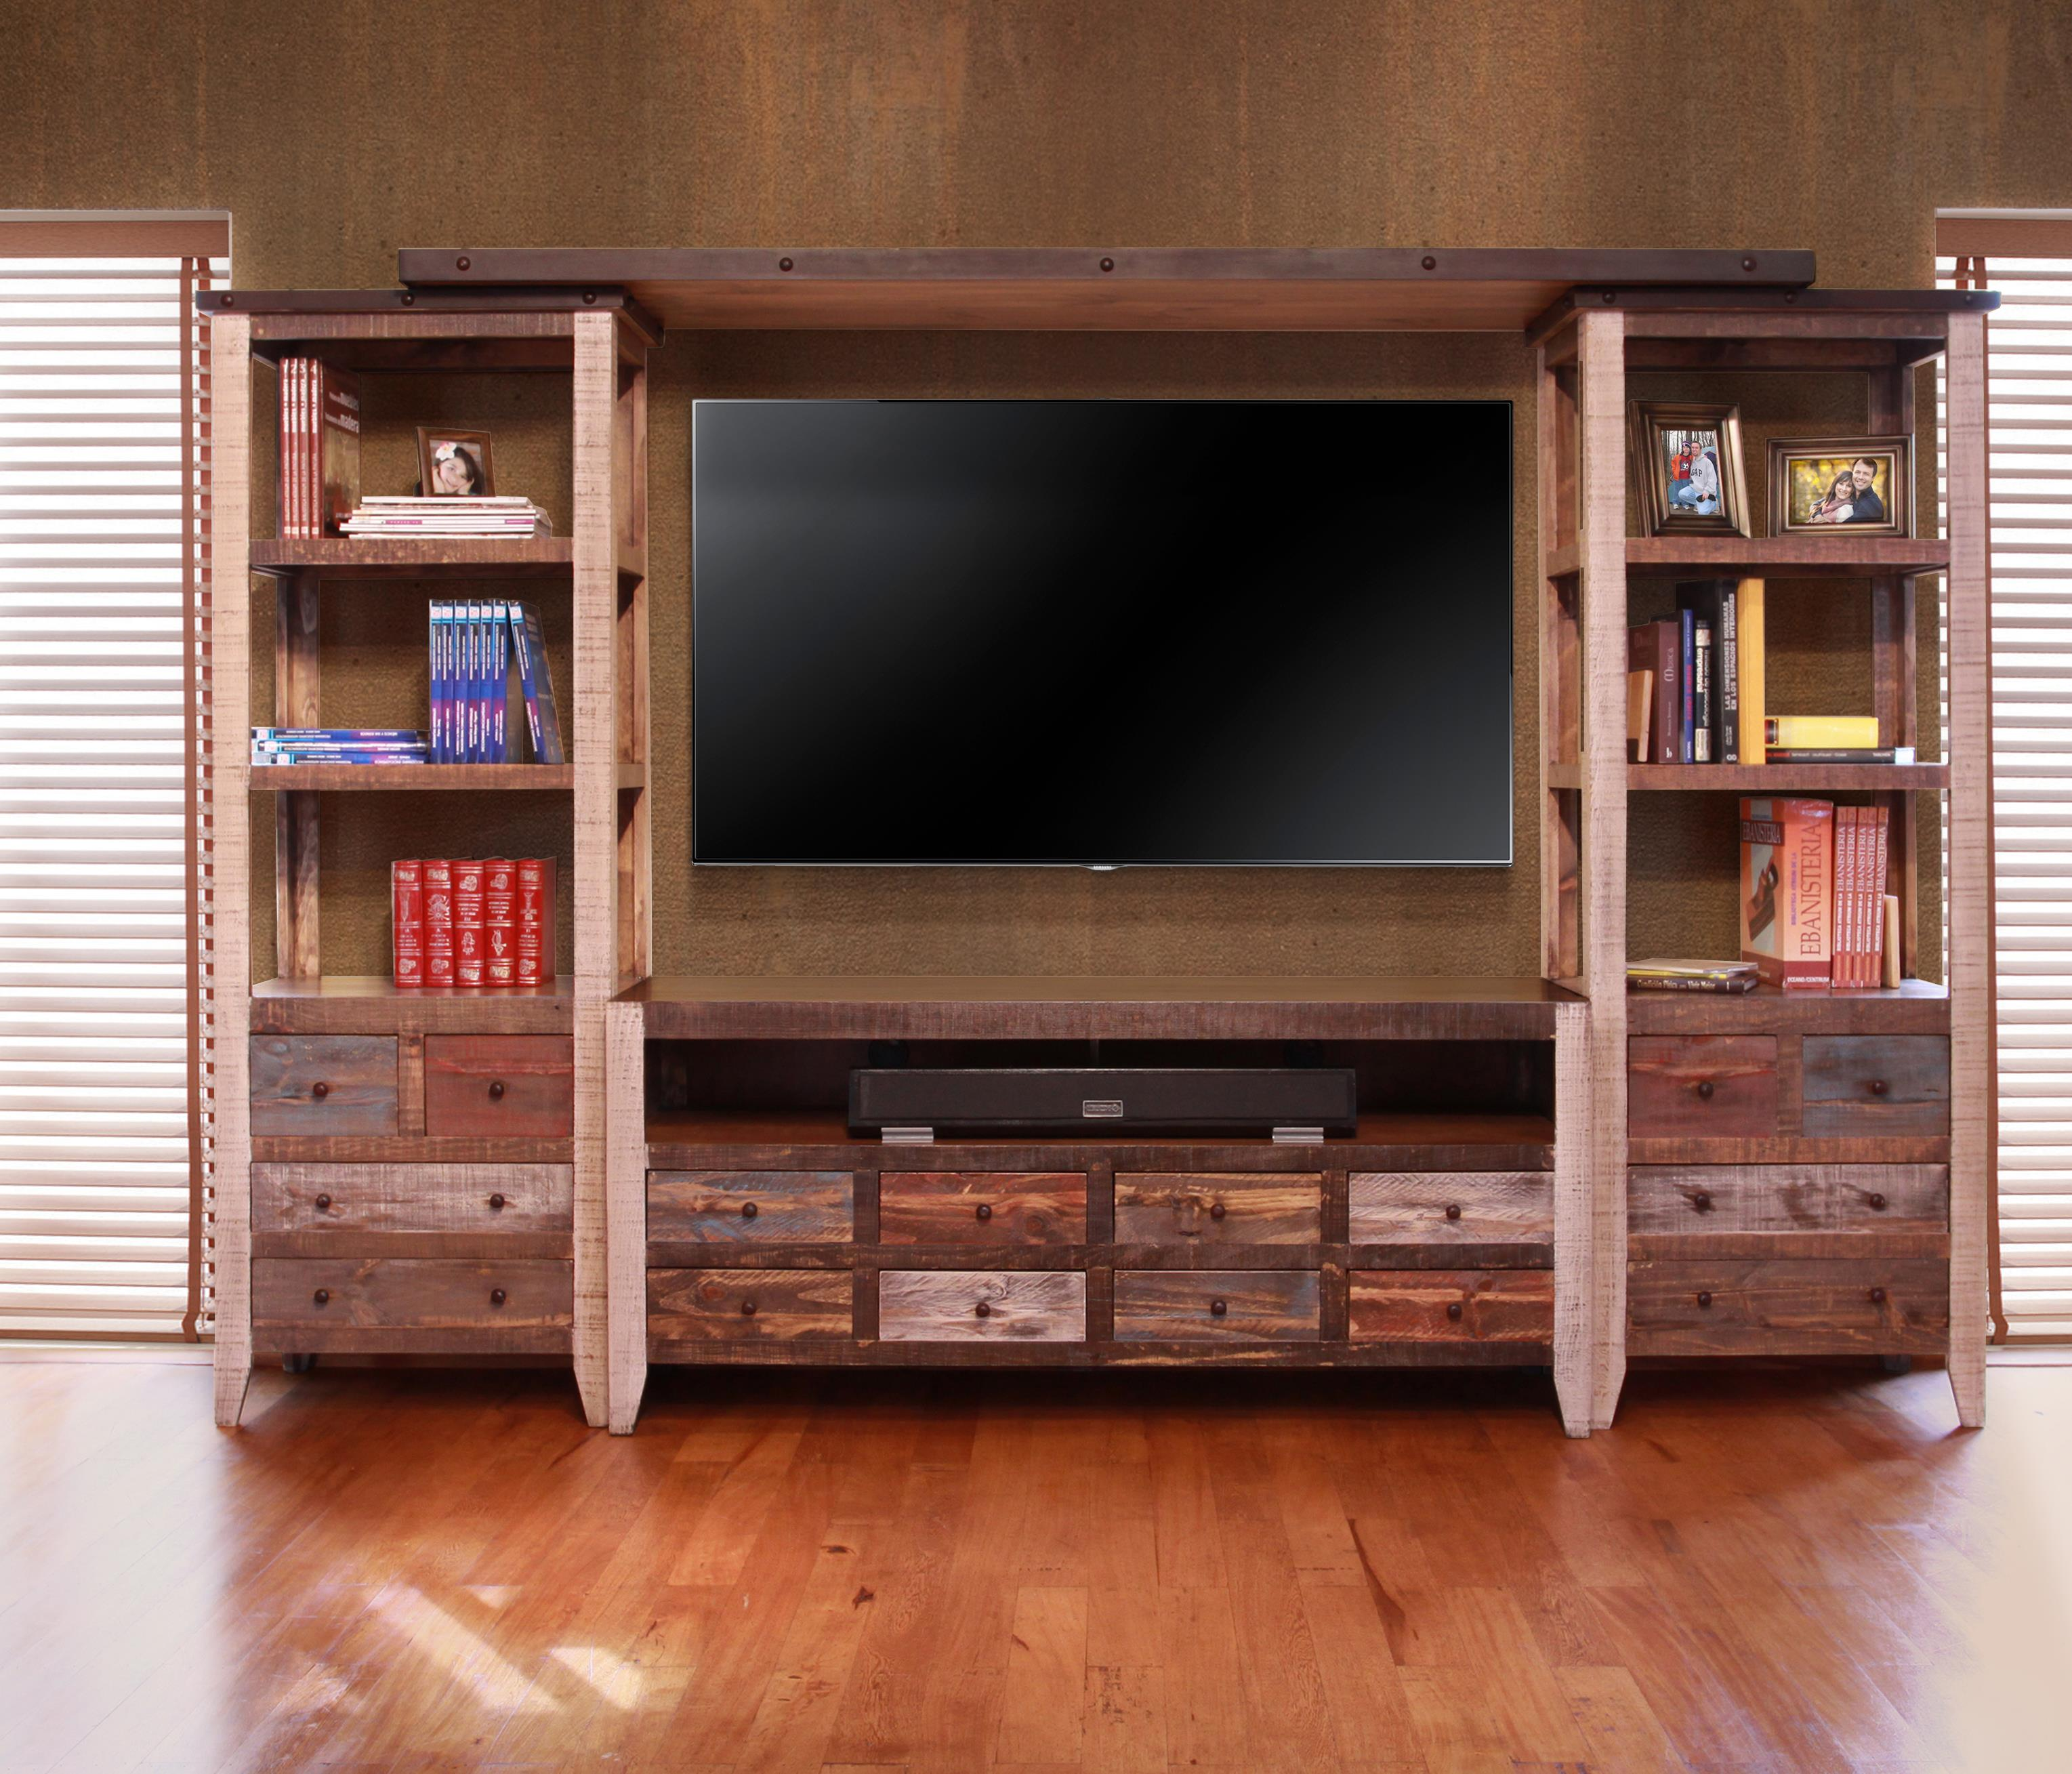 900 Antique Wall Unit by International Furniture Direct at Furniture Superstore - Rochester, MN